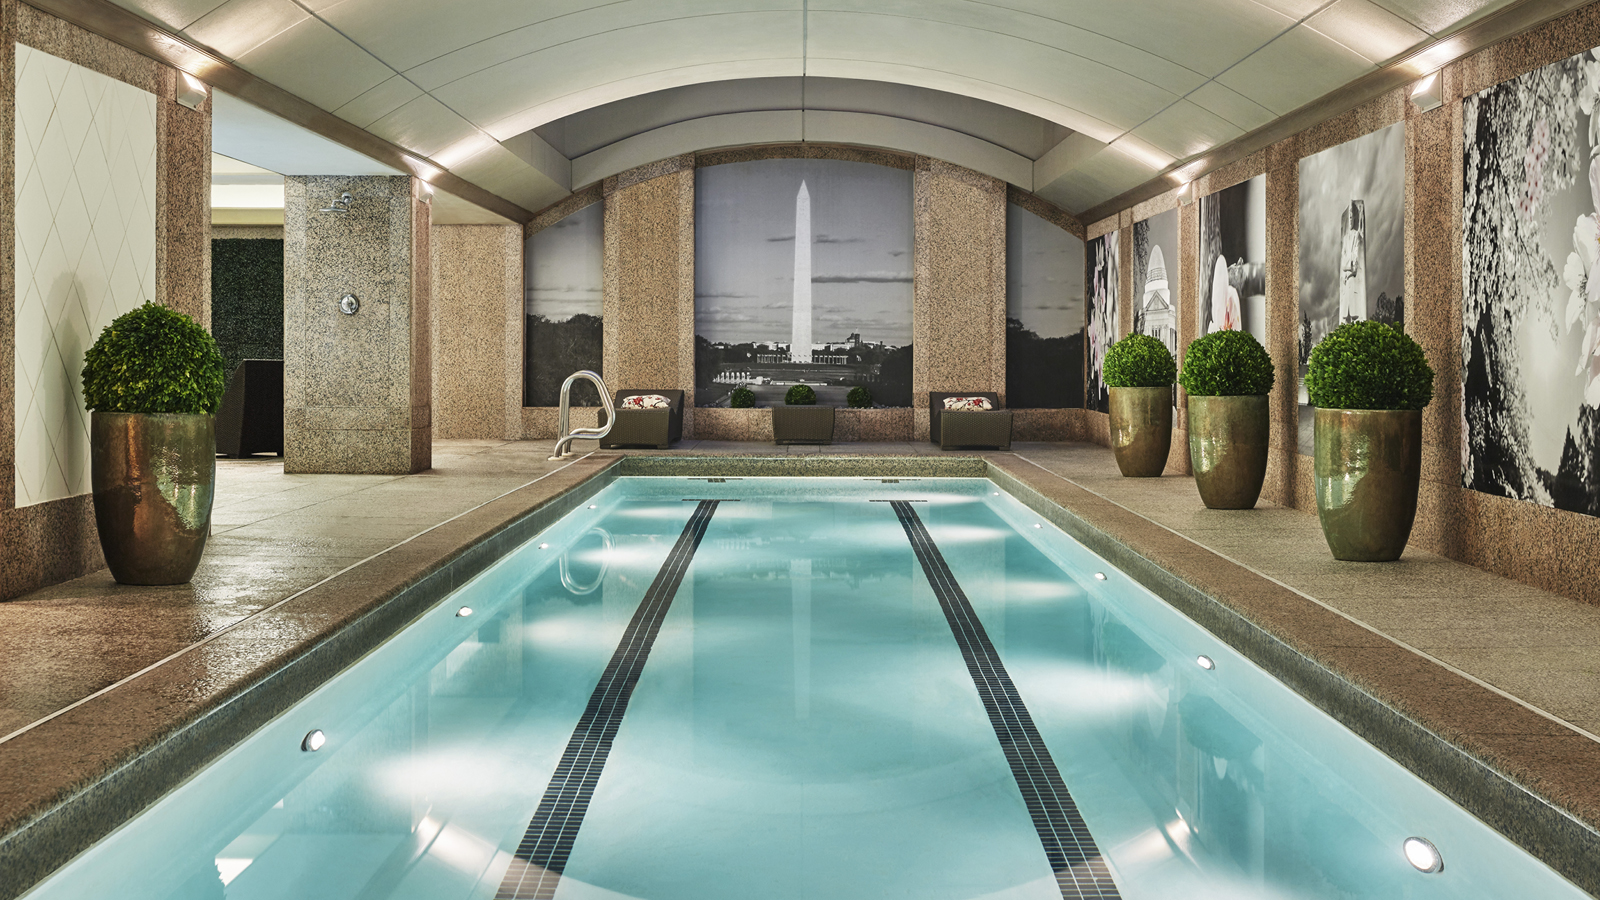 To yourself at four seasons hotel washington dc set beneath a soaring skylight in the vaulted ceiling is a private luxury two lane indoor saline pool